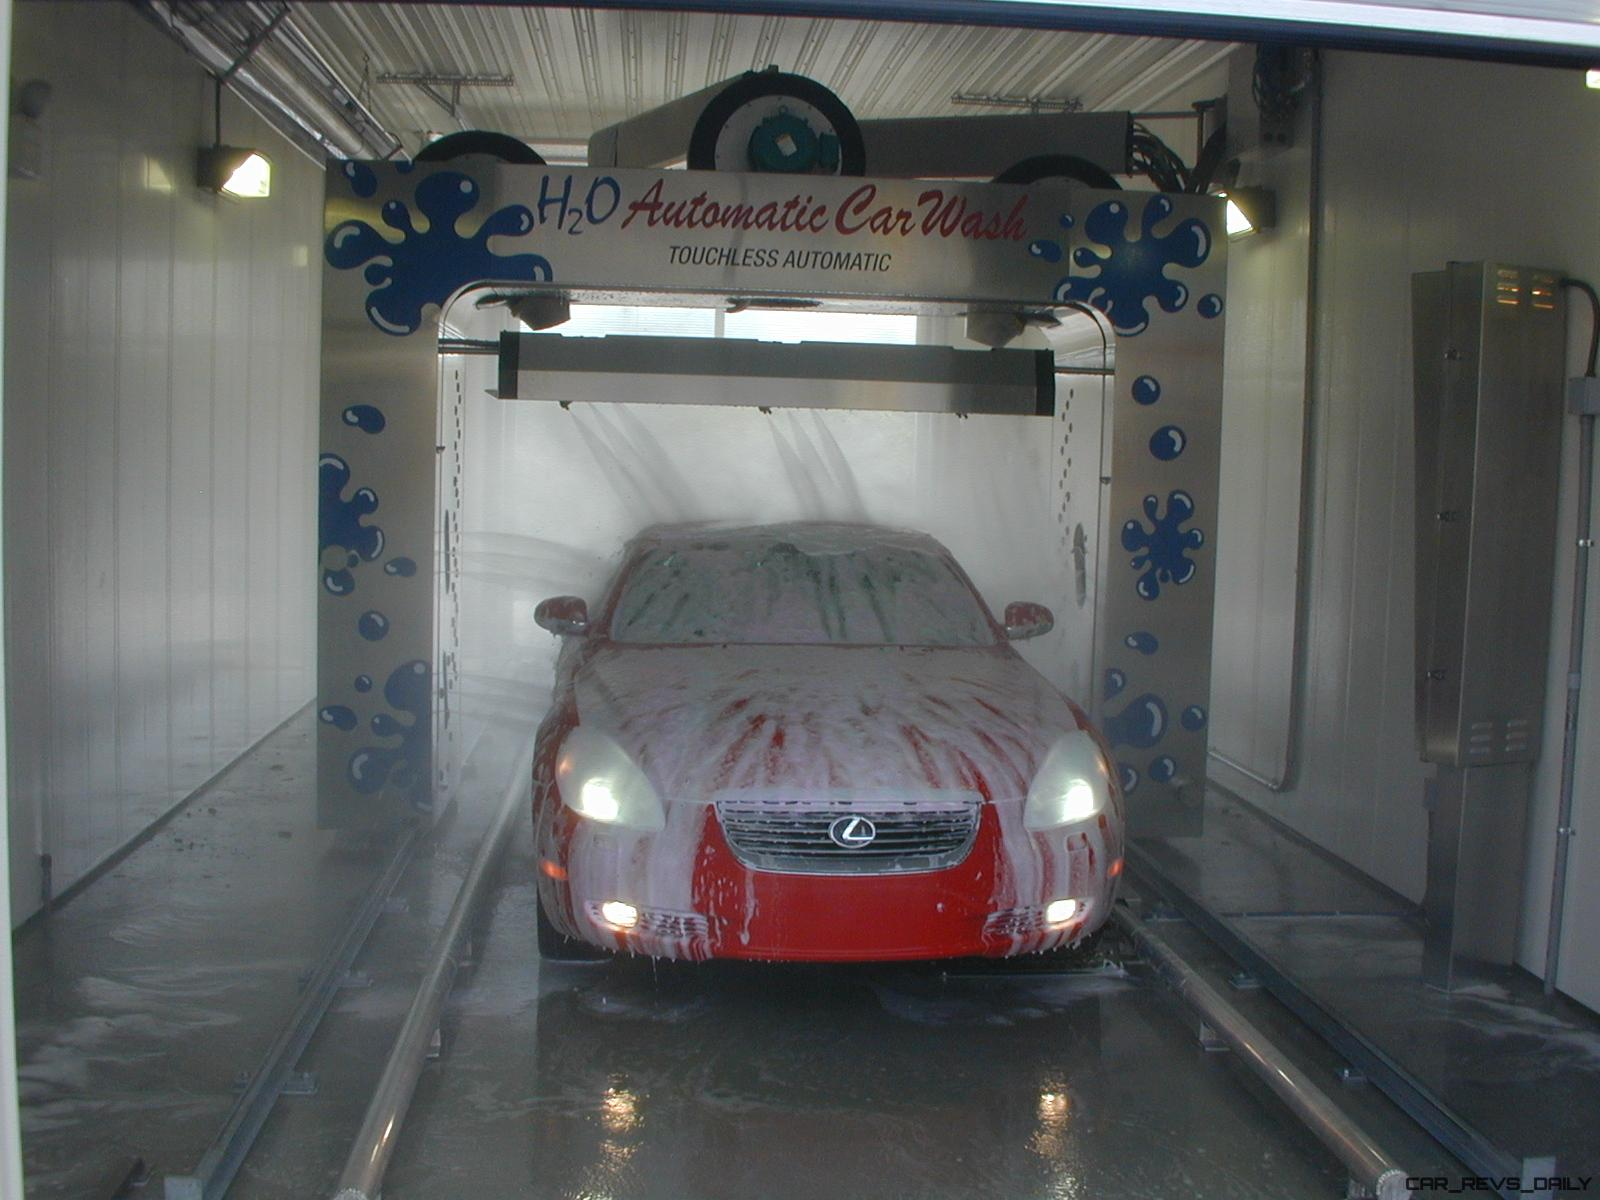 Are Automatic Car Washes Safe For Your Paint? » LATEST NEWS